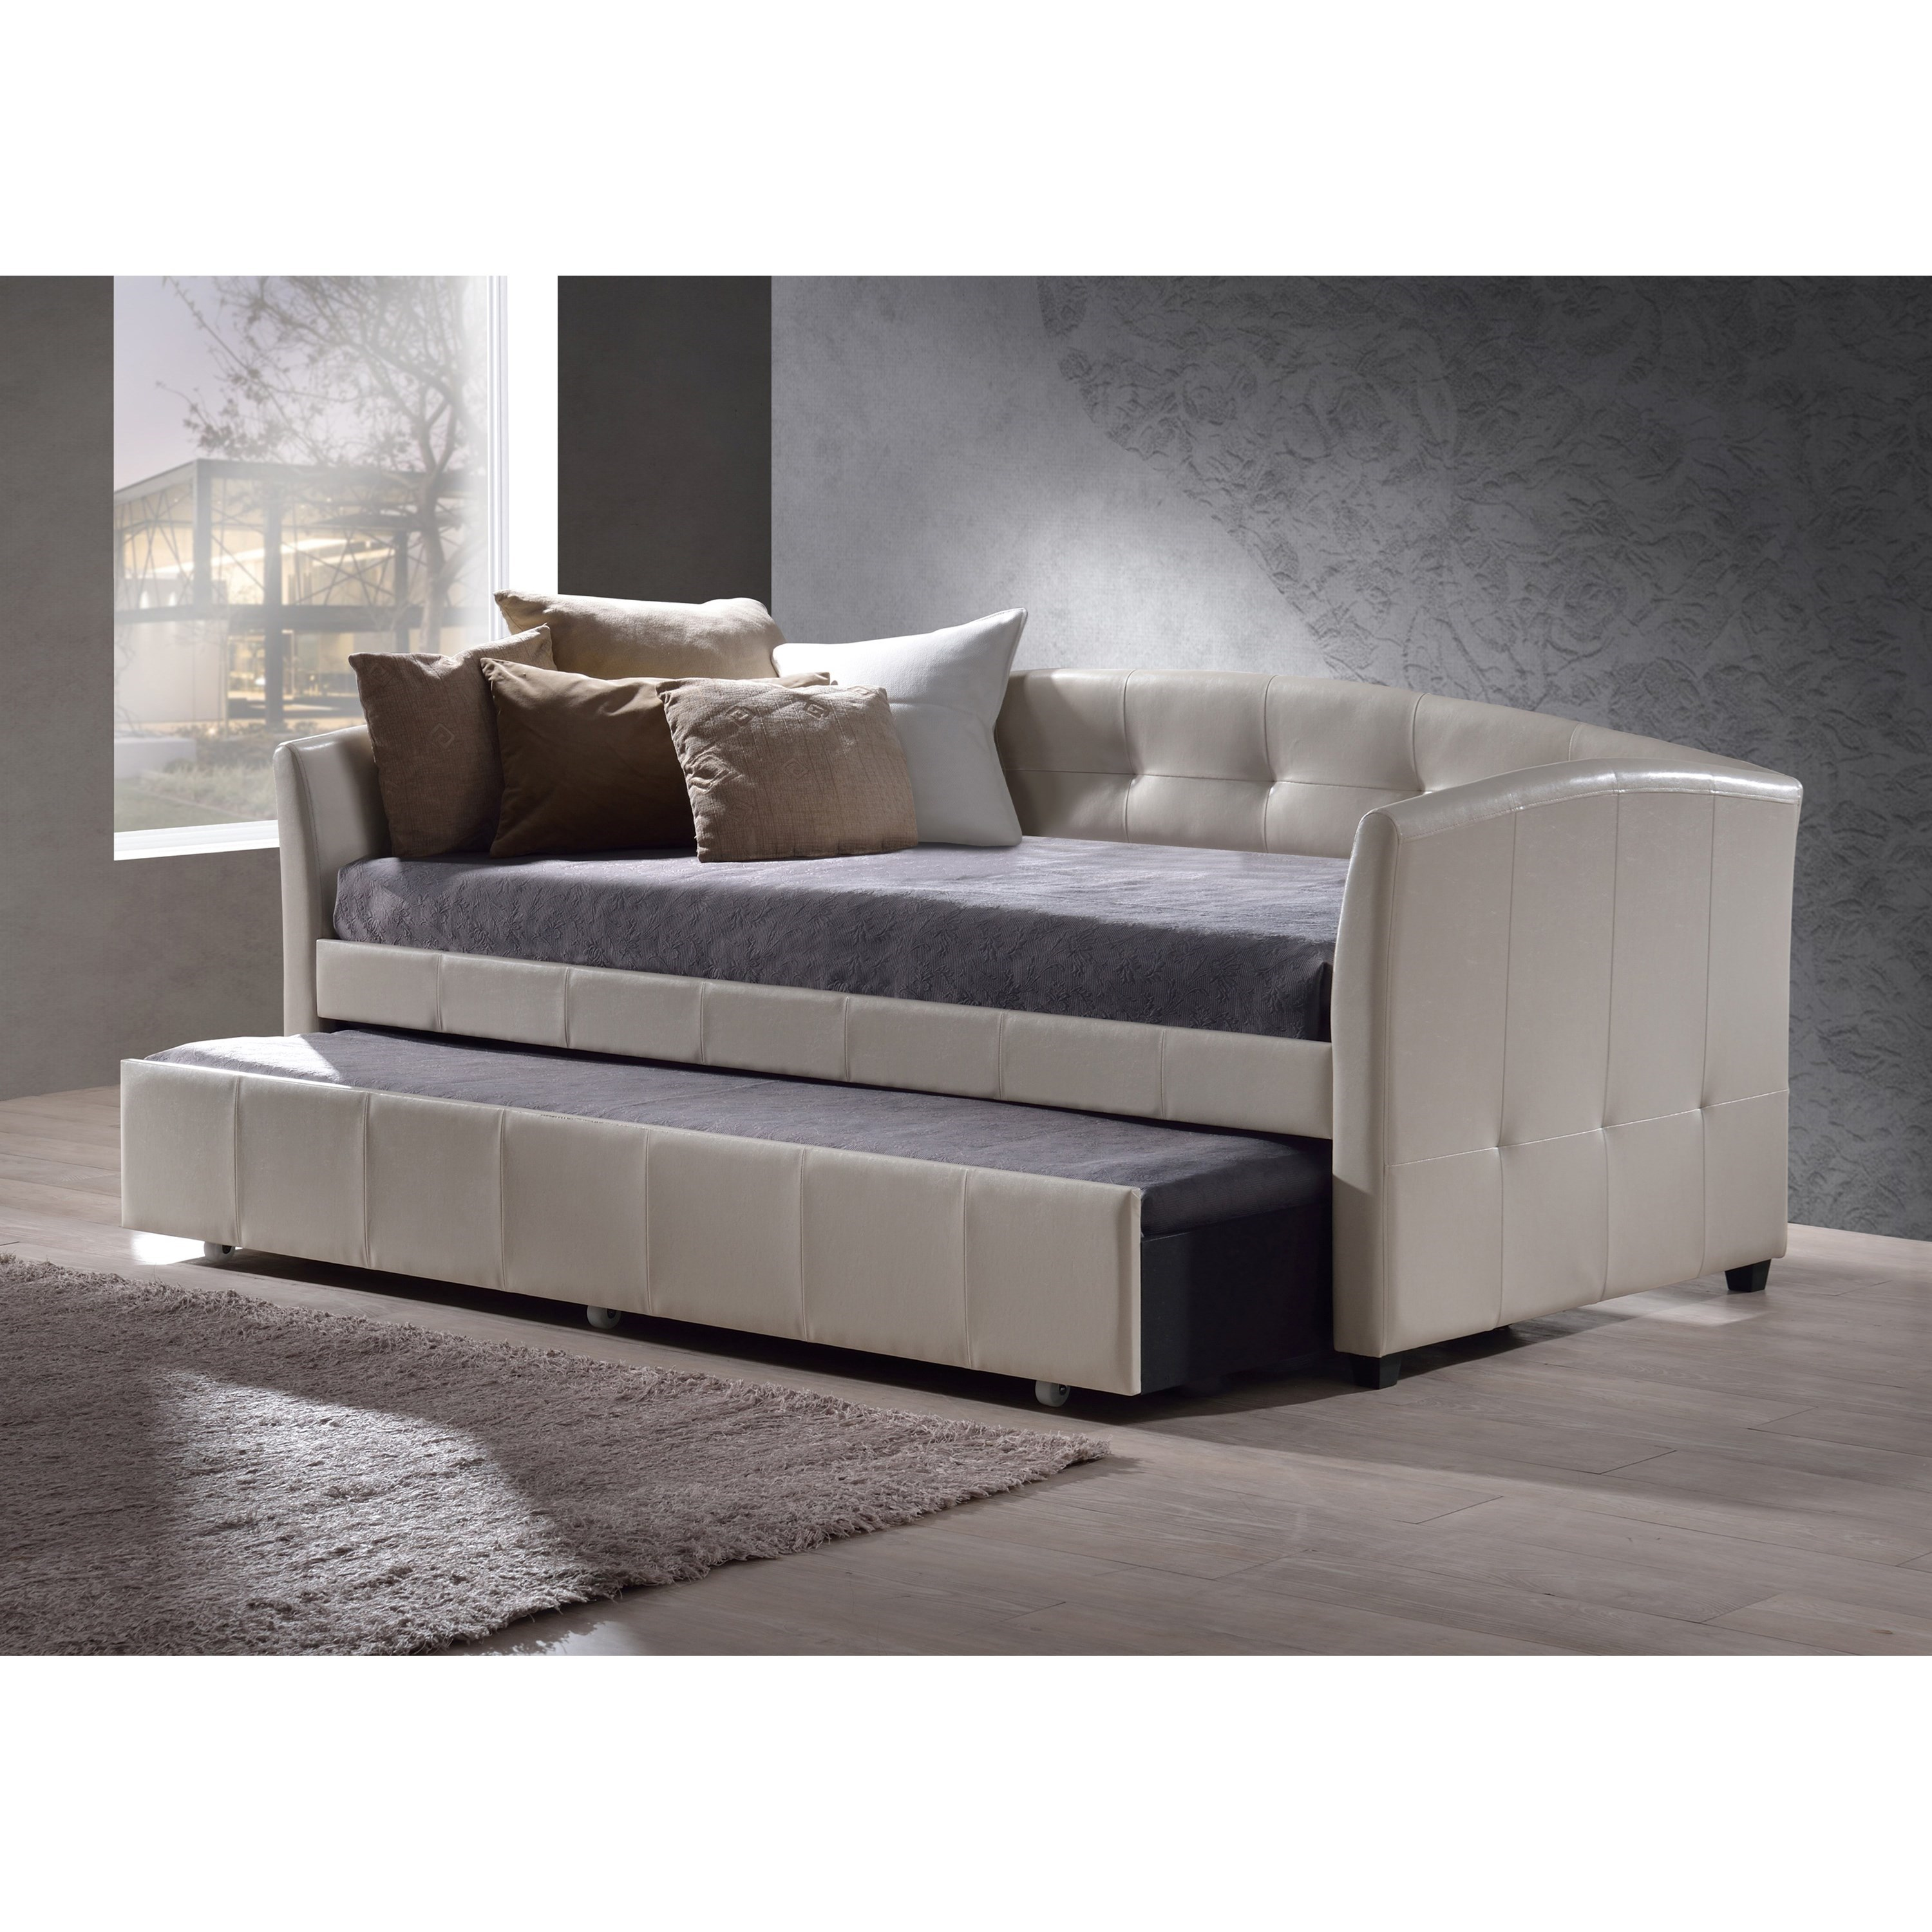 Hillsdale Daybeds Napoli Daybed - Item Number: 1061DBT